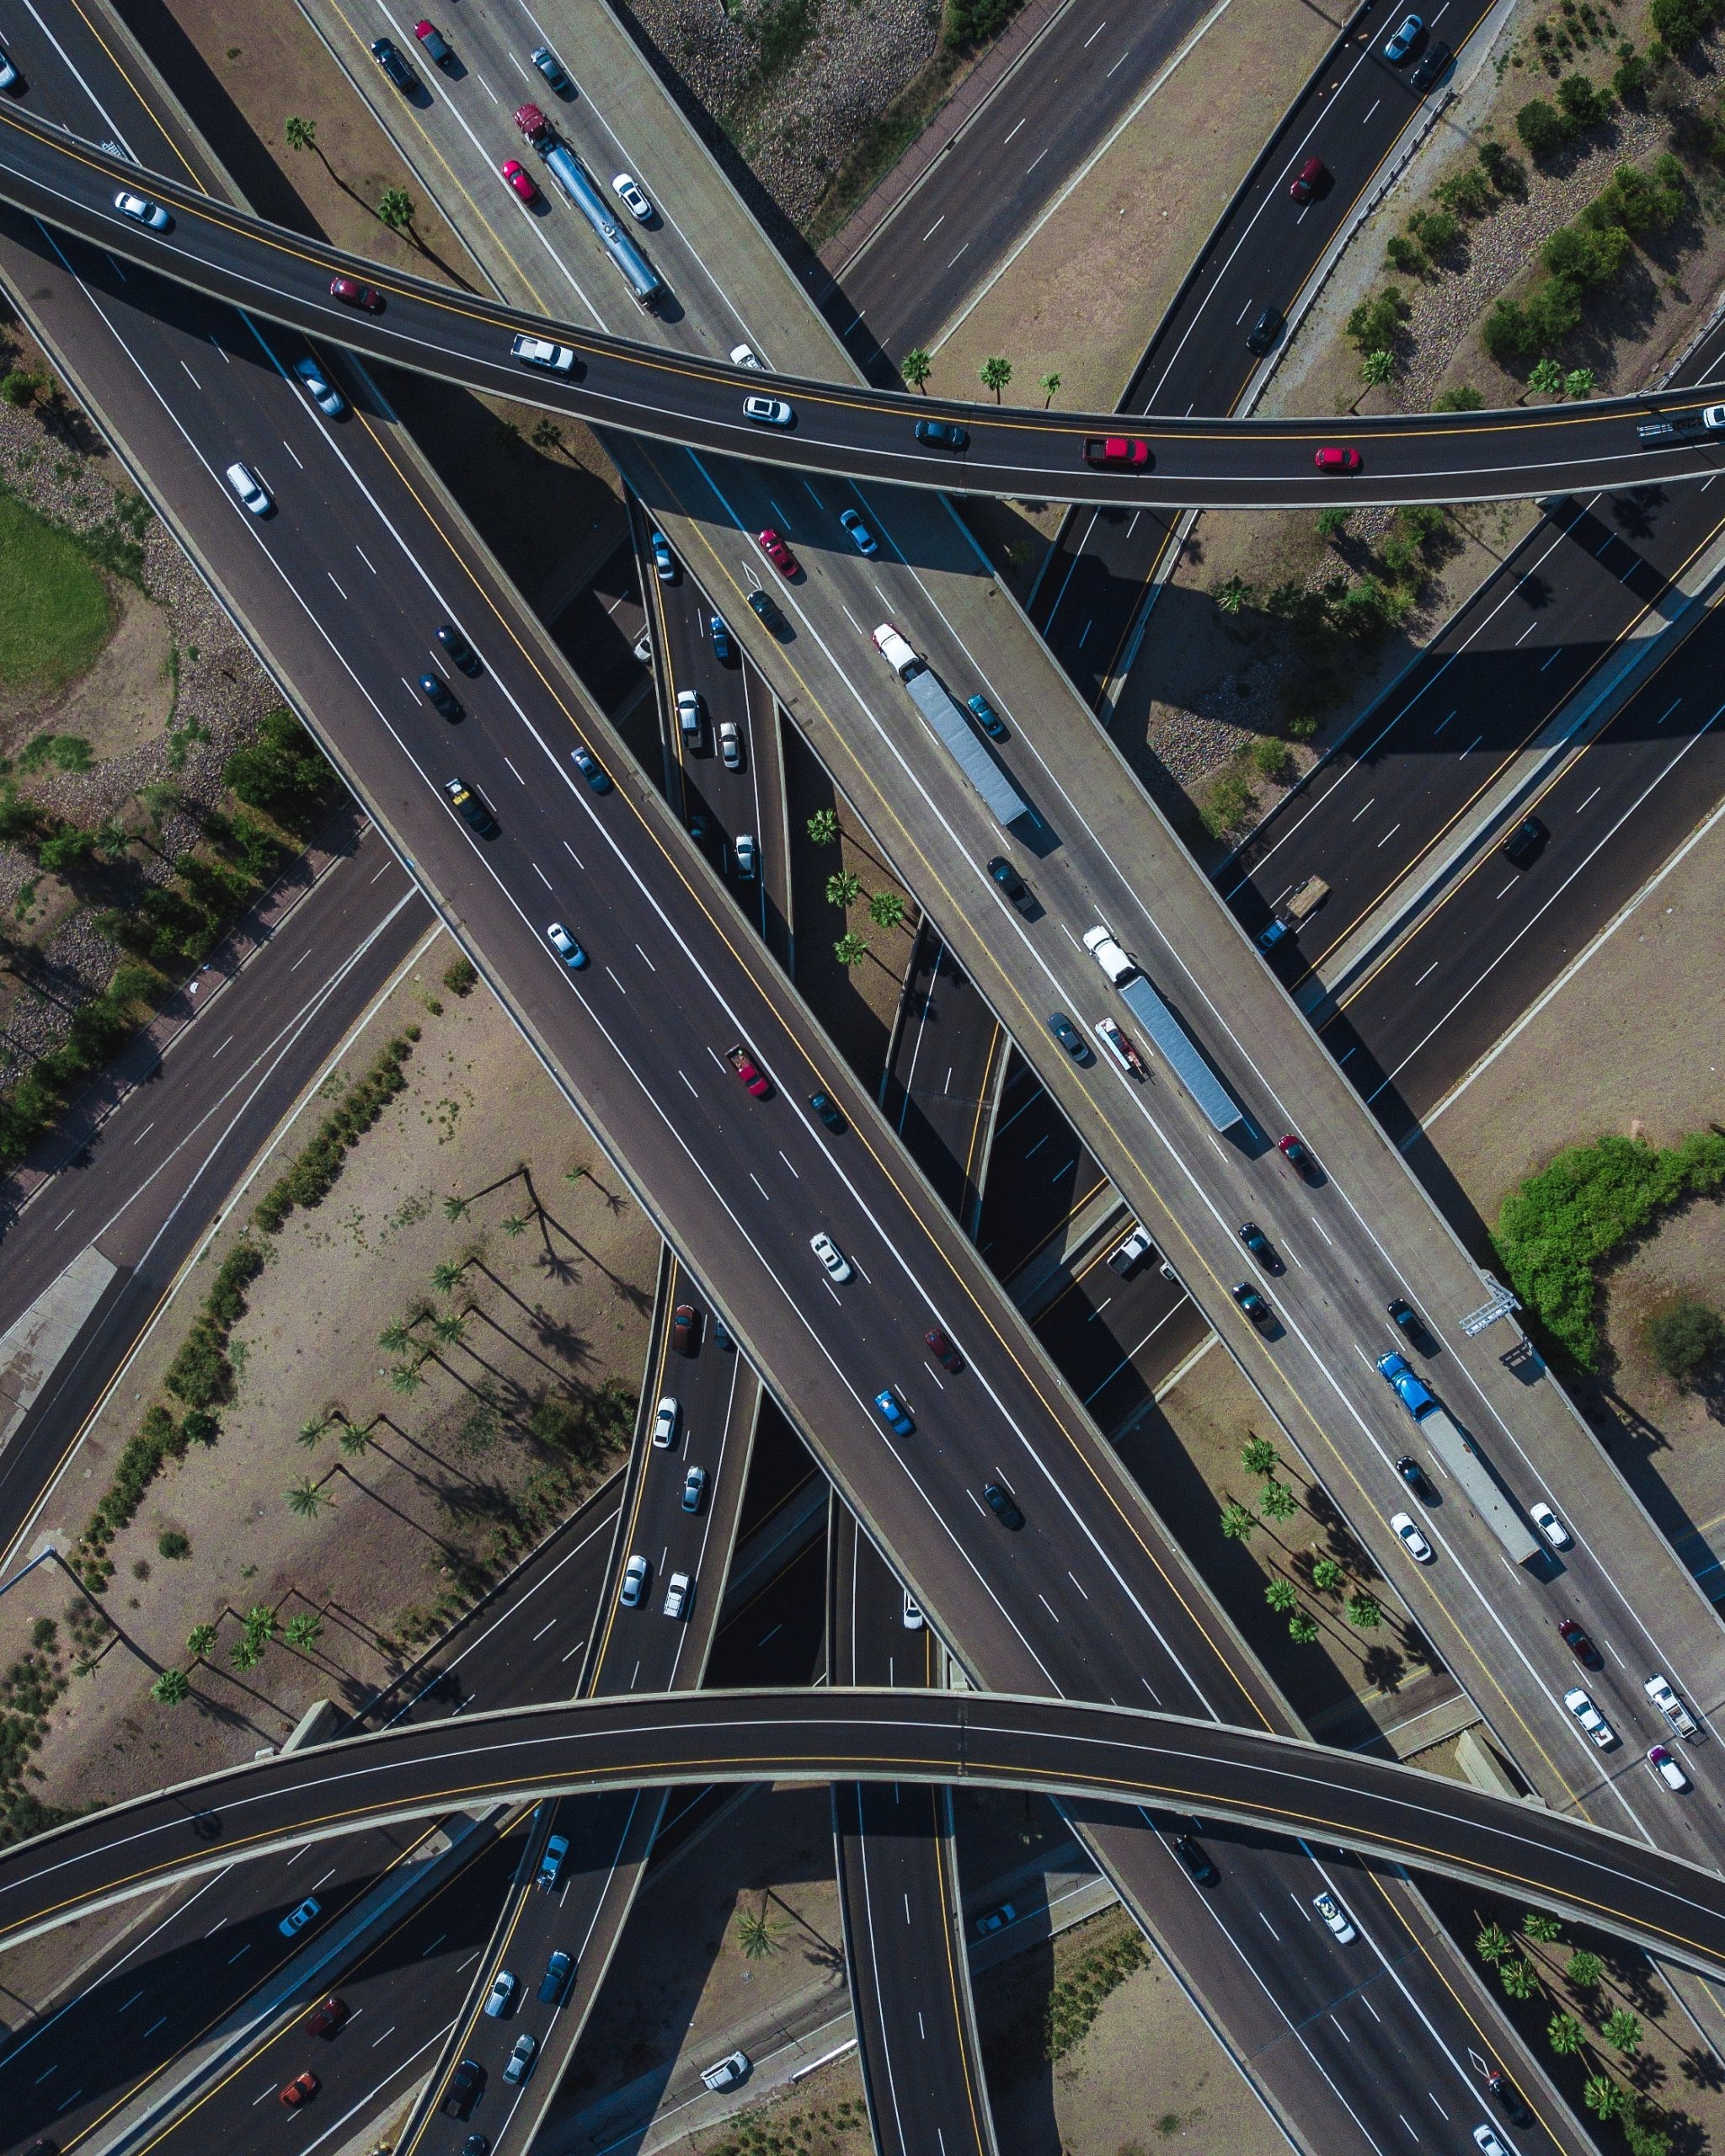 Infrastructure Remains Number One Focus